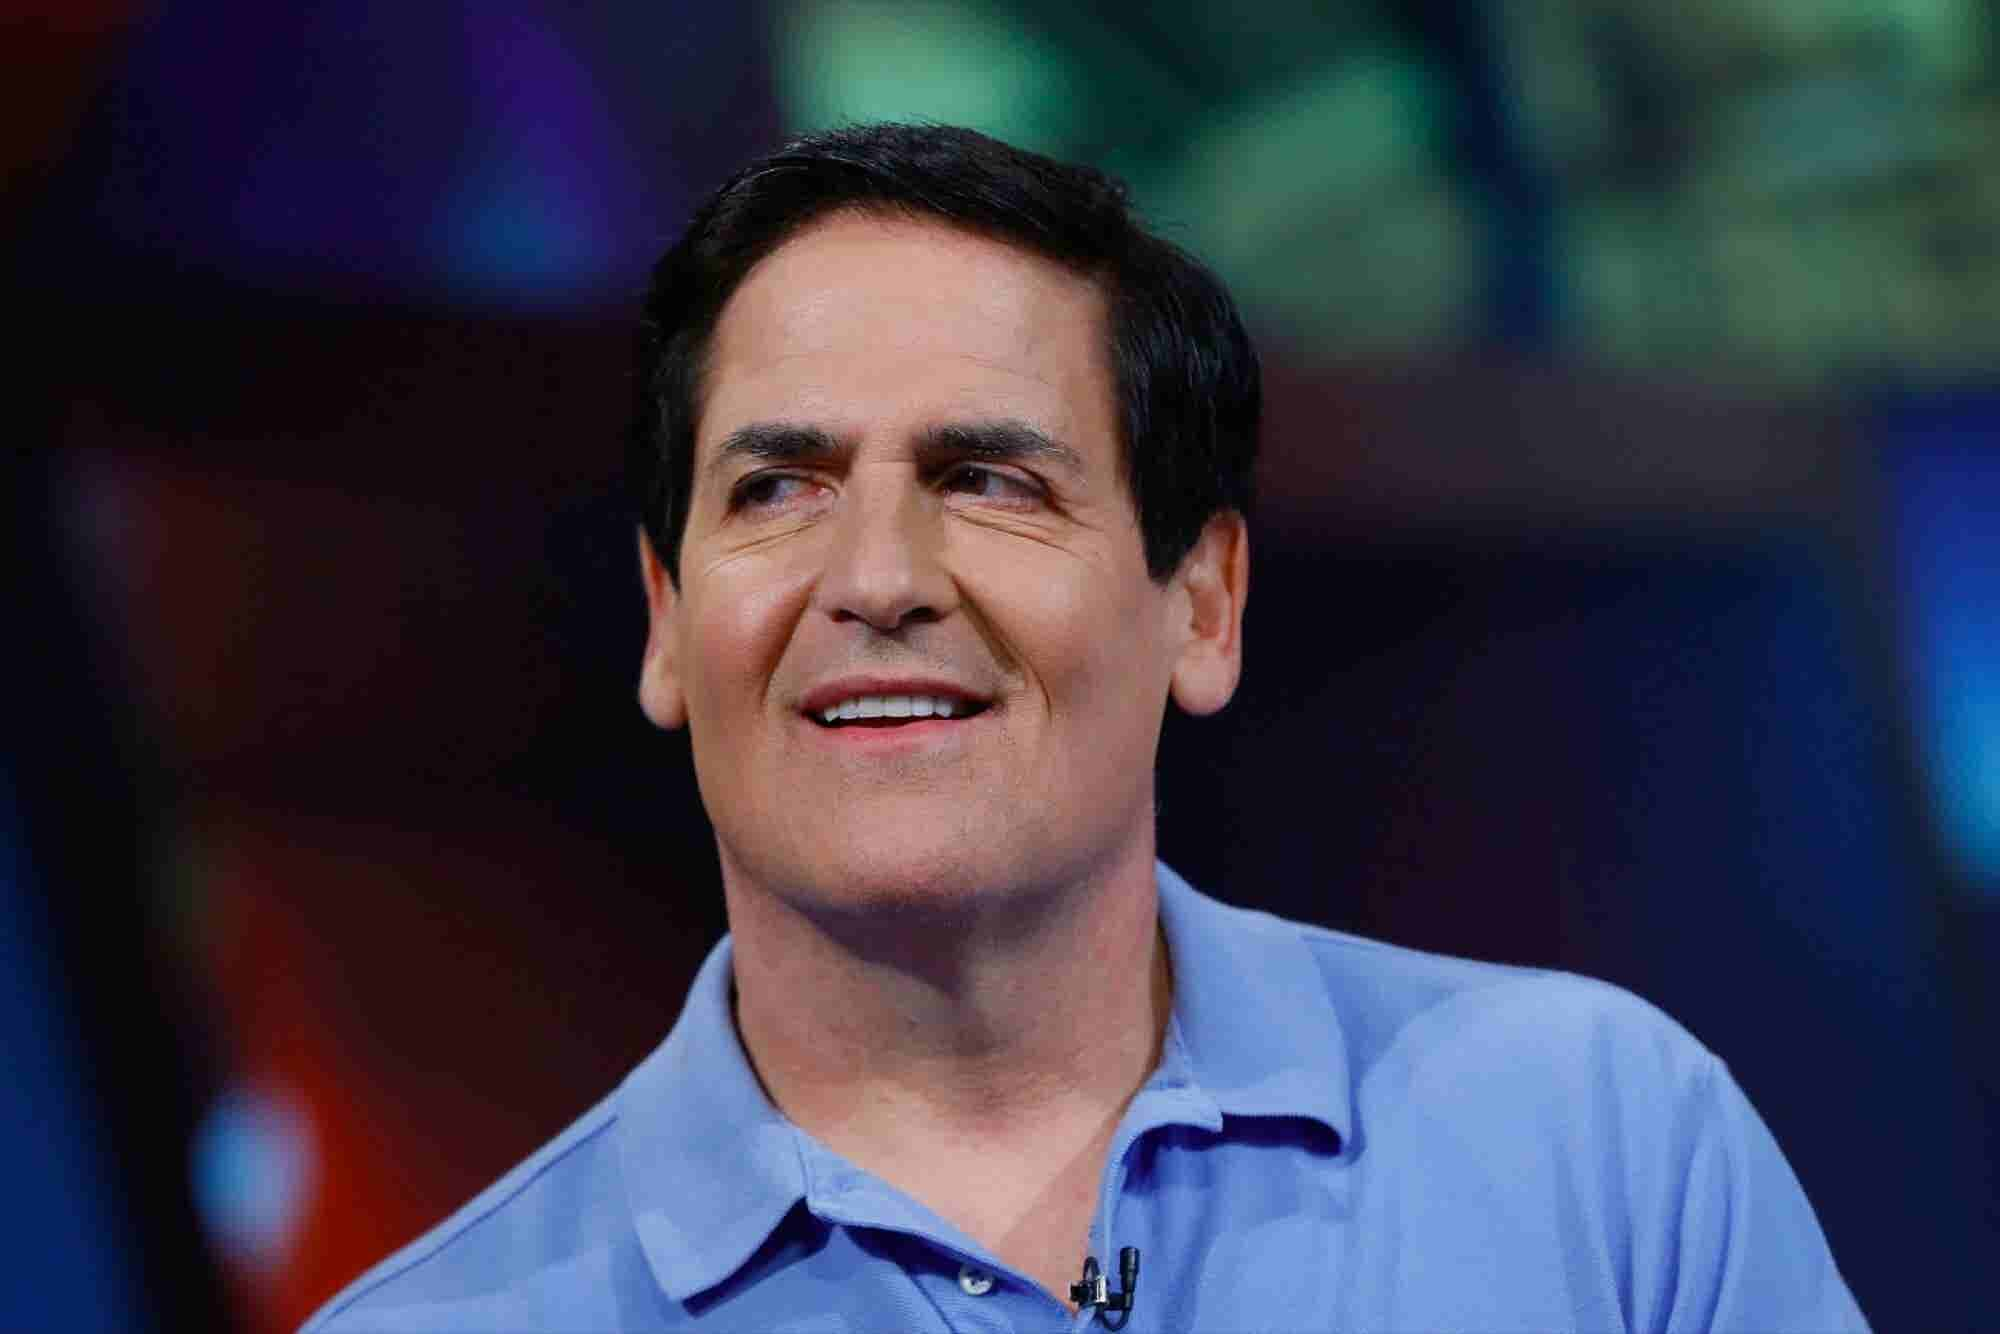 23 Quotes on Failure From Super Successful Leaders Like Barbara Corcoran, Mark Cuban and More